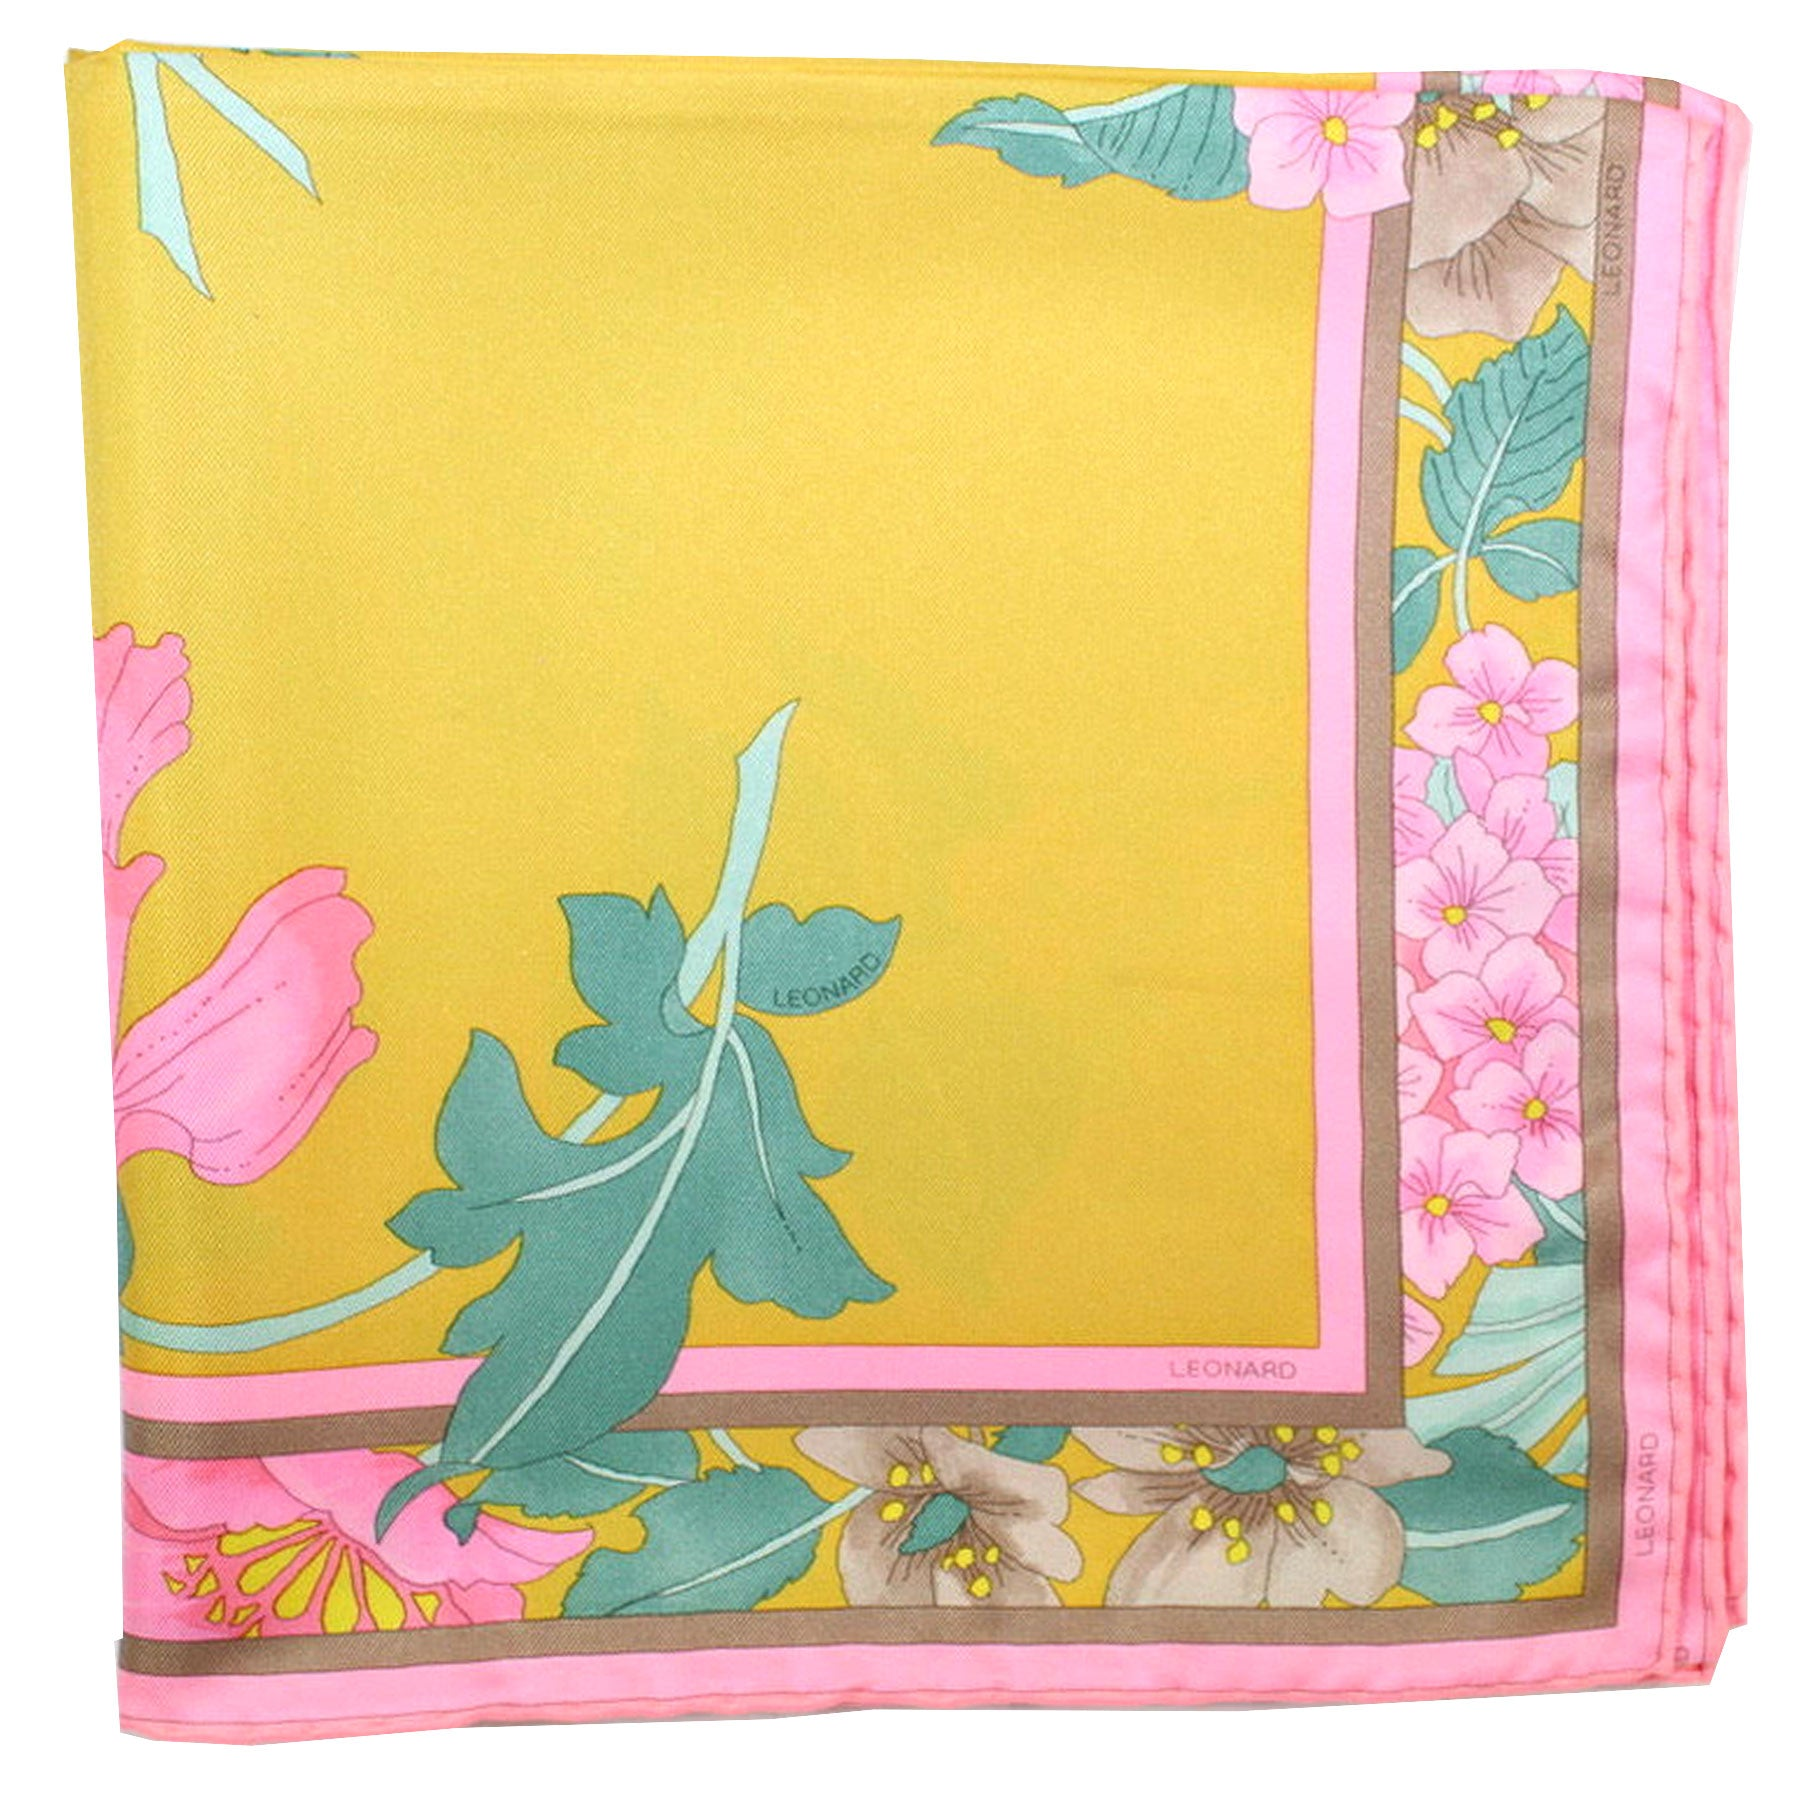 Leonard Paris Scarf Mustard Yellow Pink Floral - Large Square Twill Silk Scarf